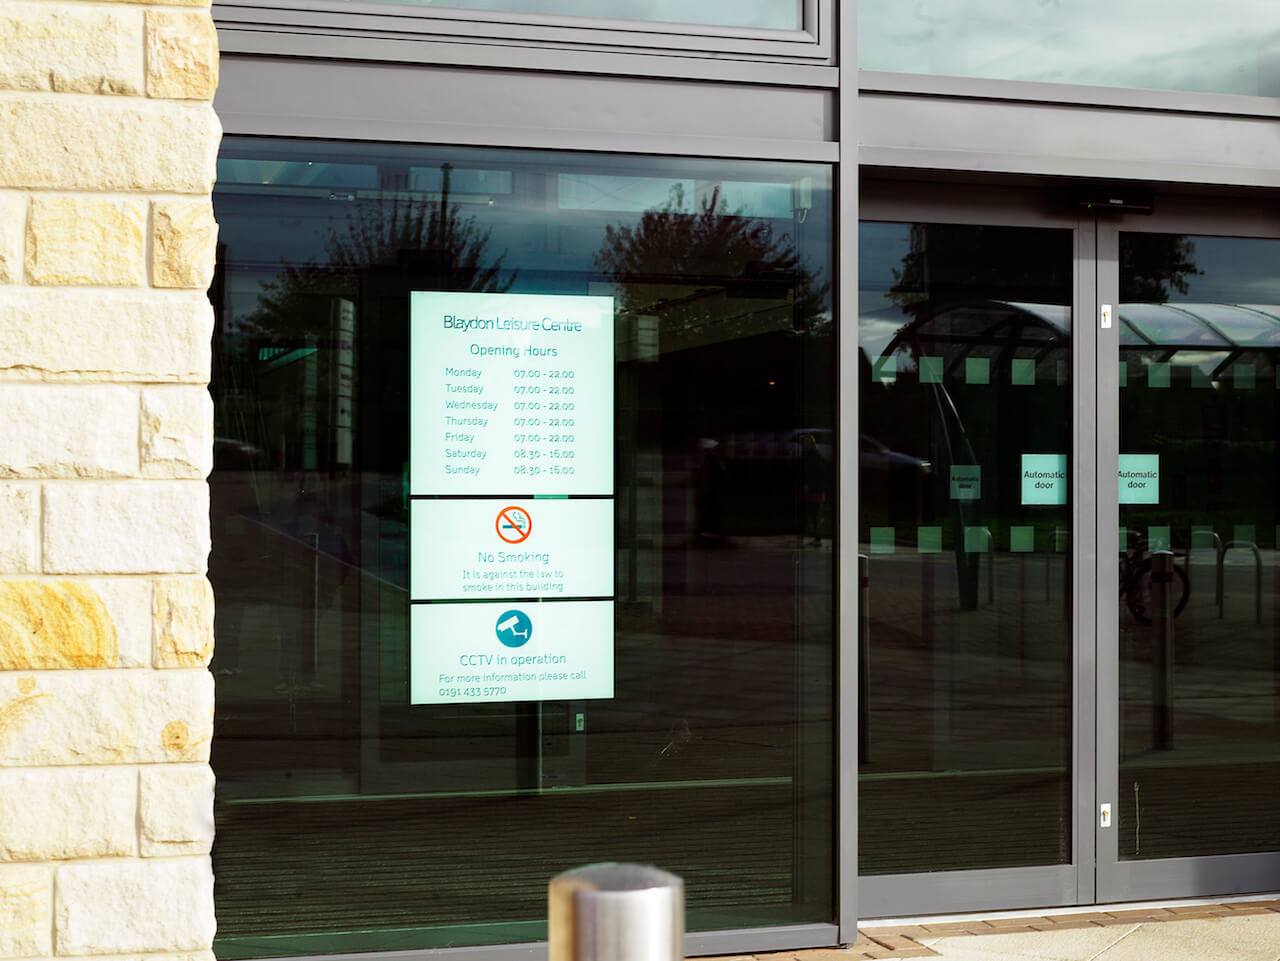 The door signage and external graphics at leisure centres need to be clear, robust and easy-to-update